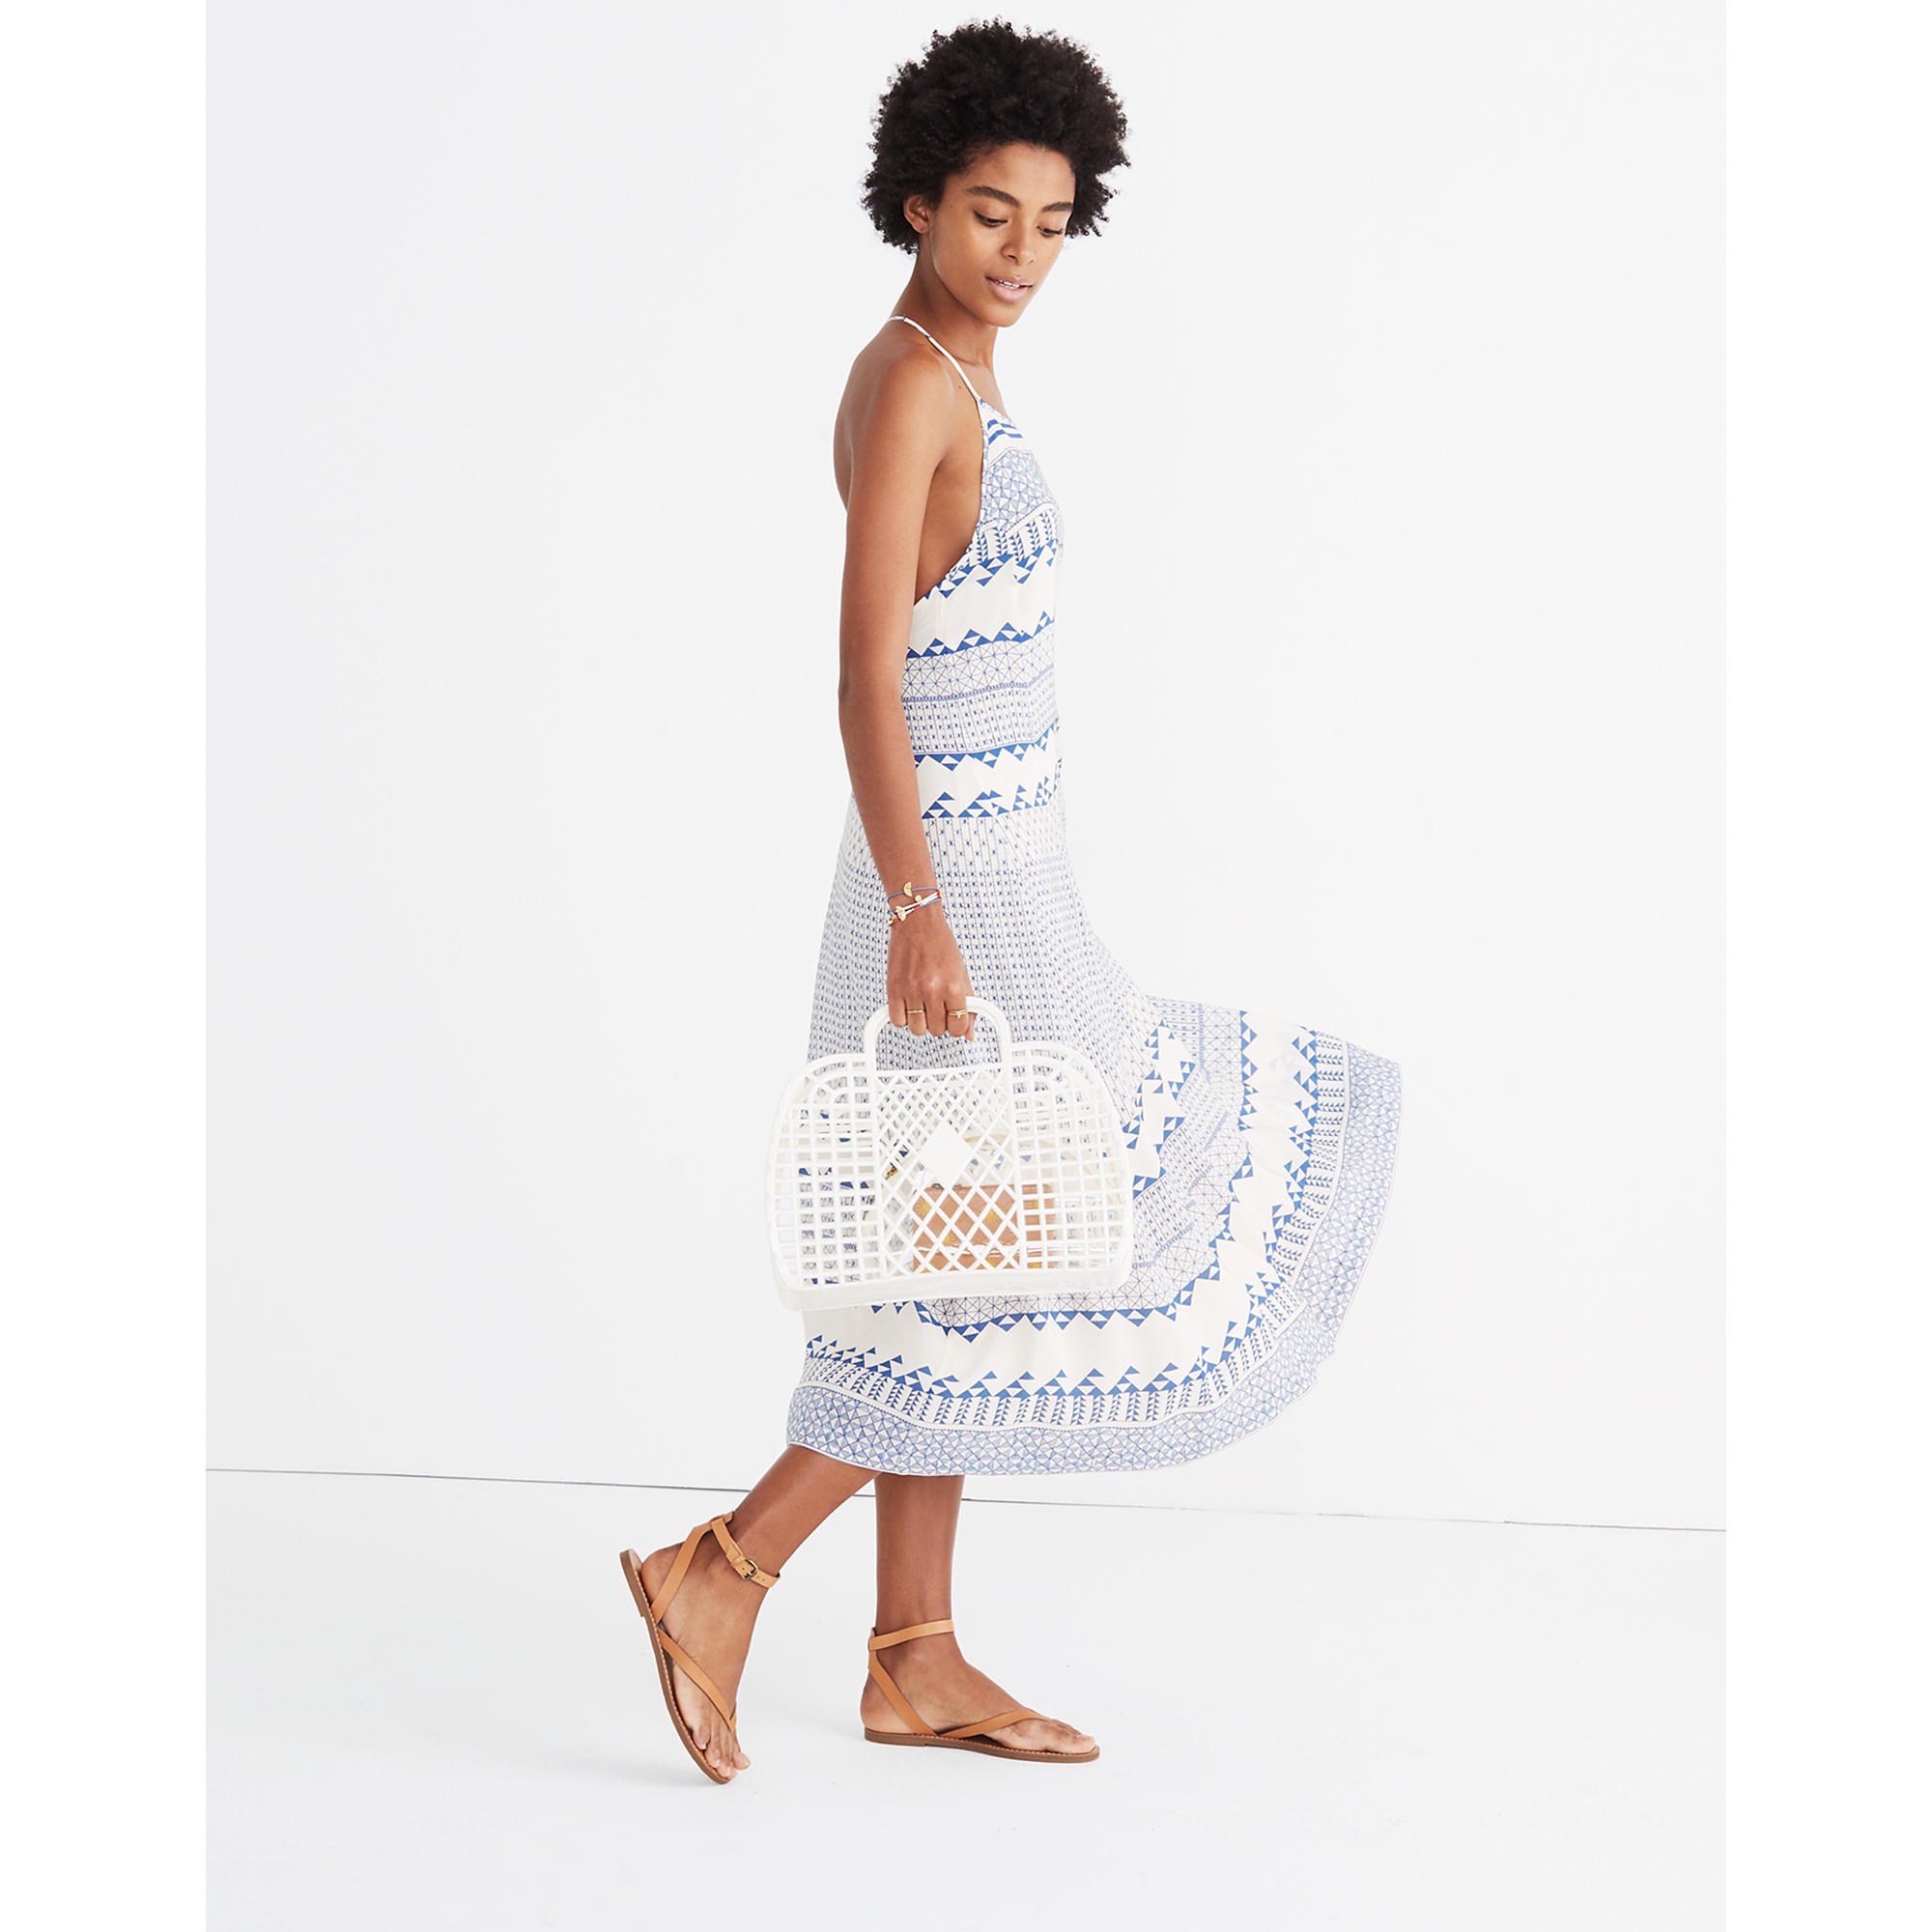 Madewell open-back trapeze dress in ionian tile